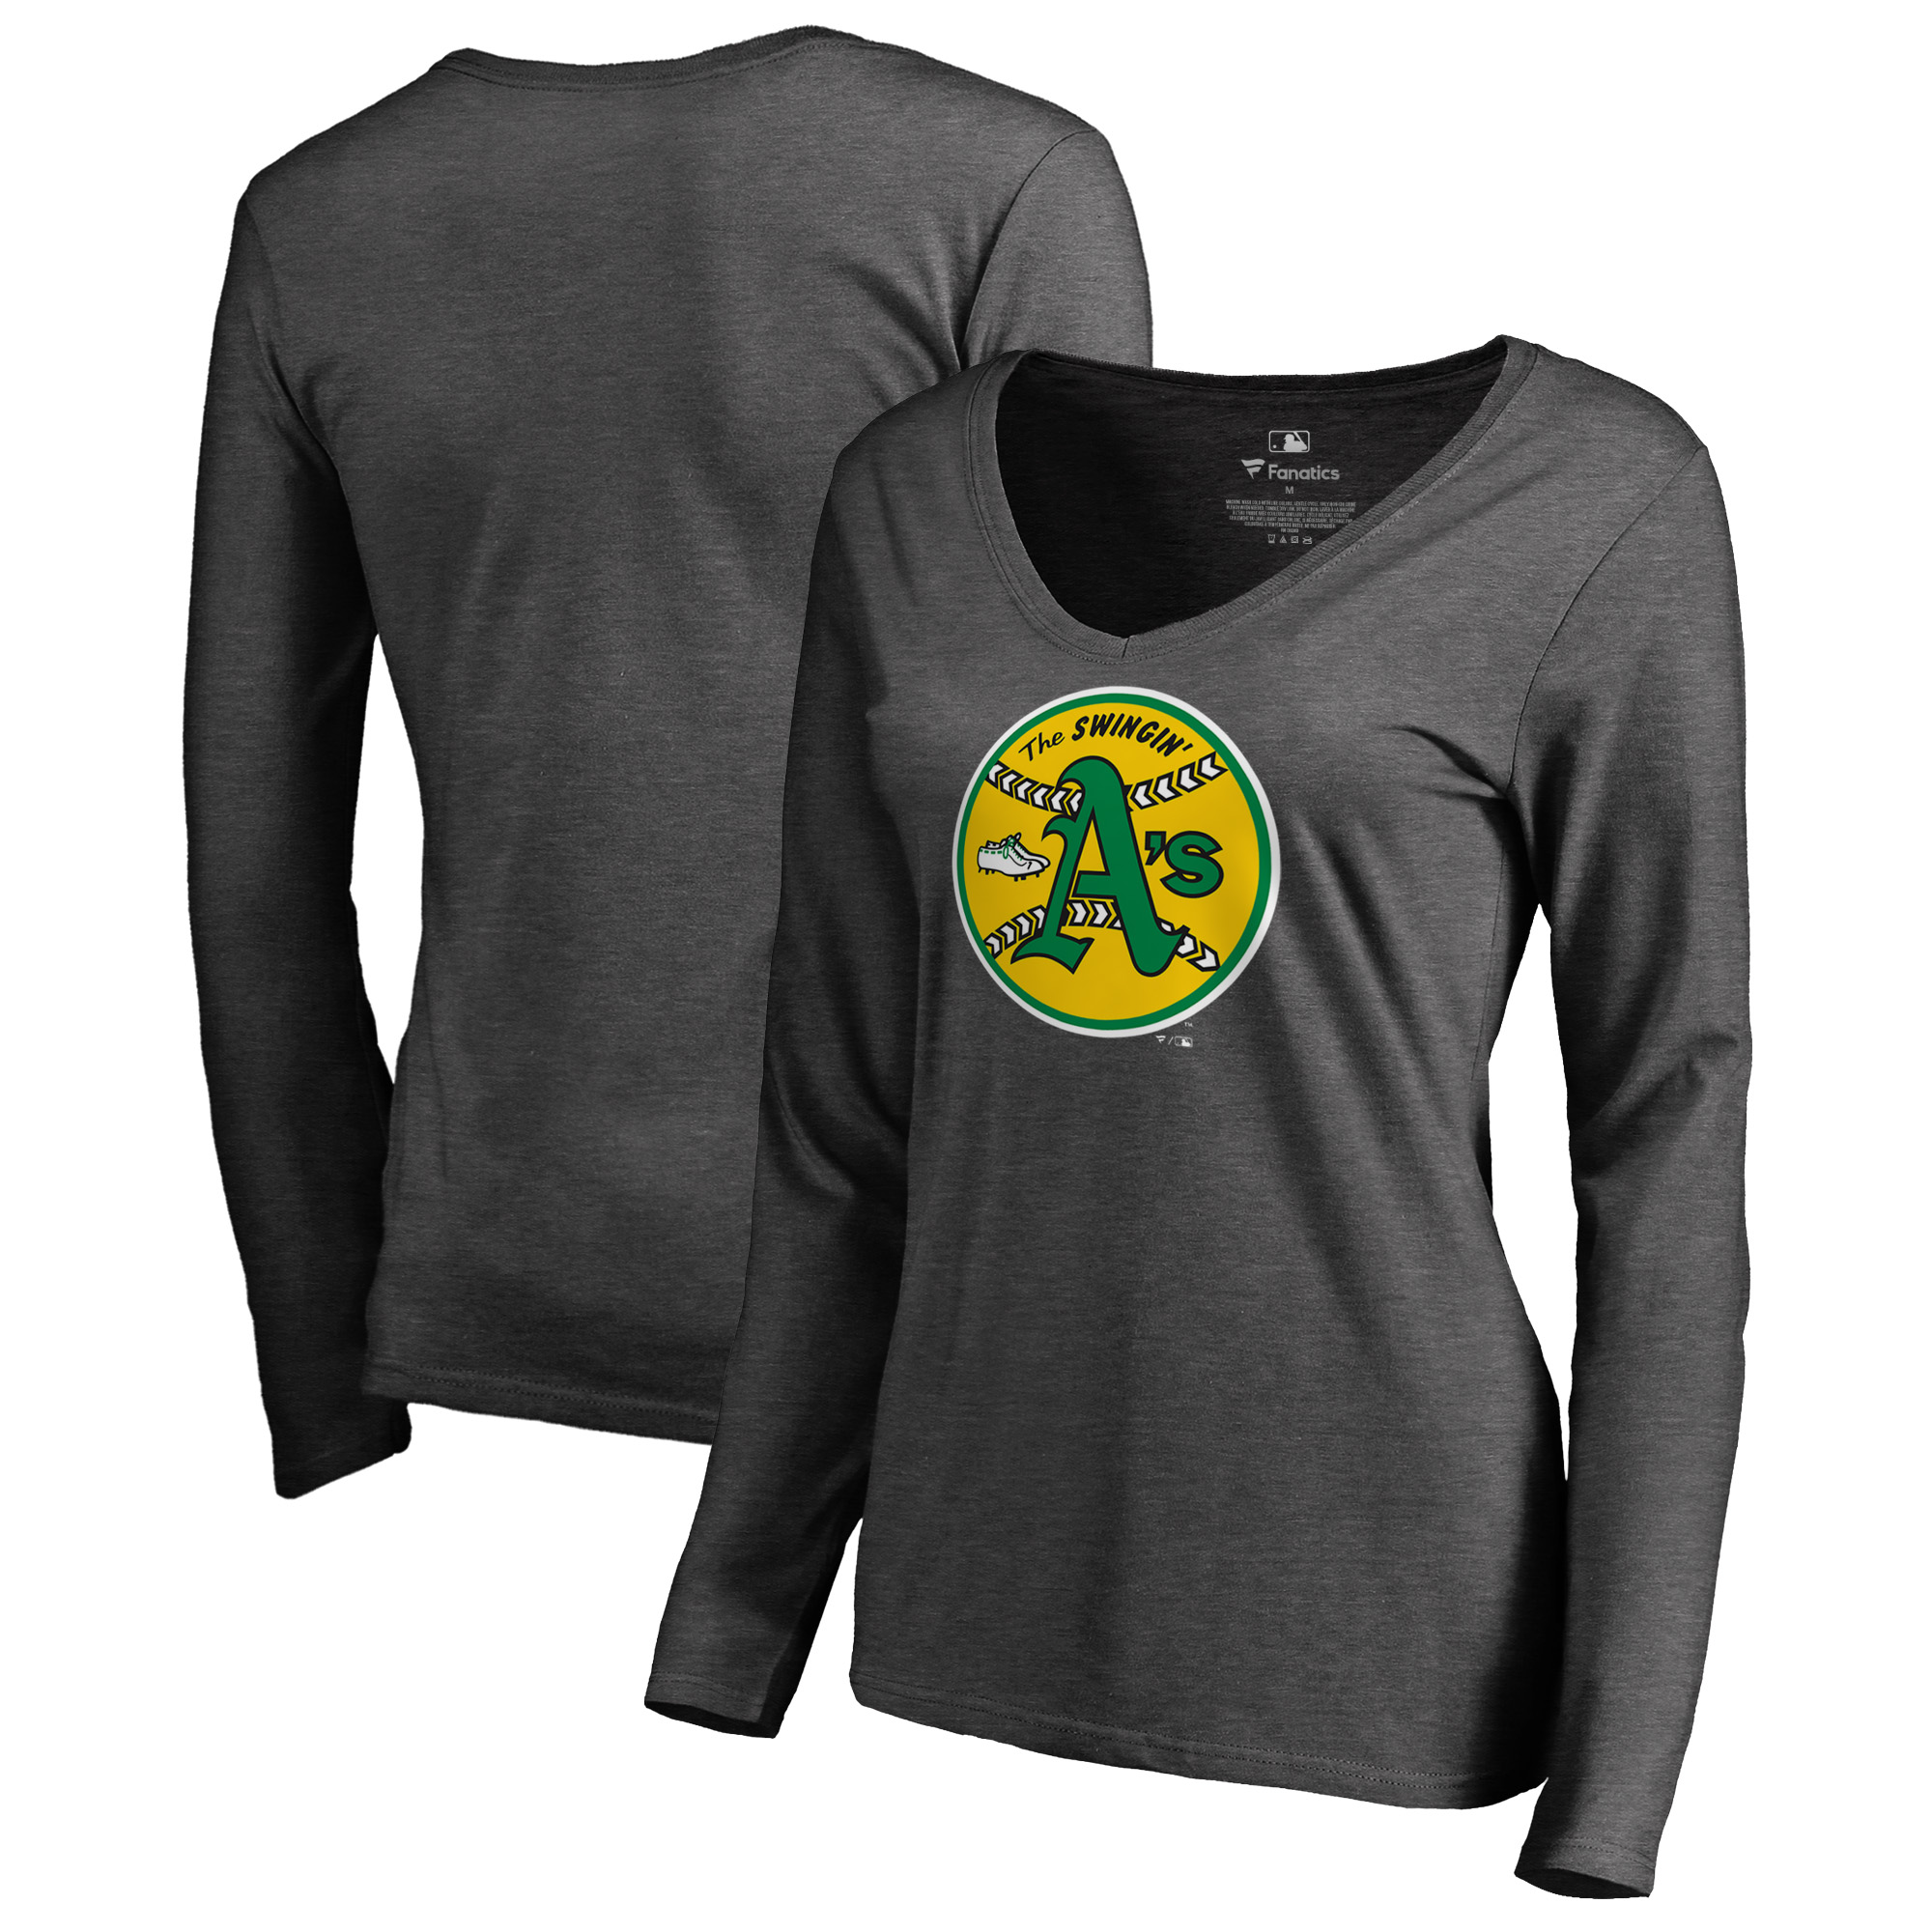 Oakland Athletics Fanatics Branded Women's Cooperstown Collection Huntington Long Sleeve V-Neck T-Shirt - Heathered Gray